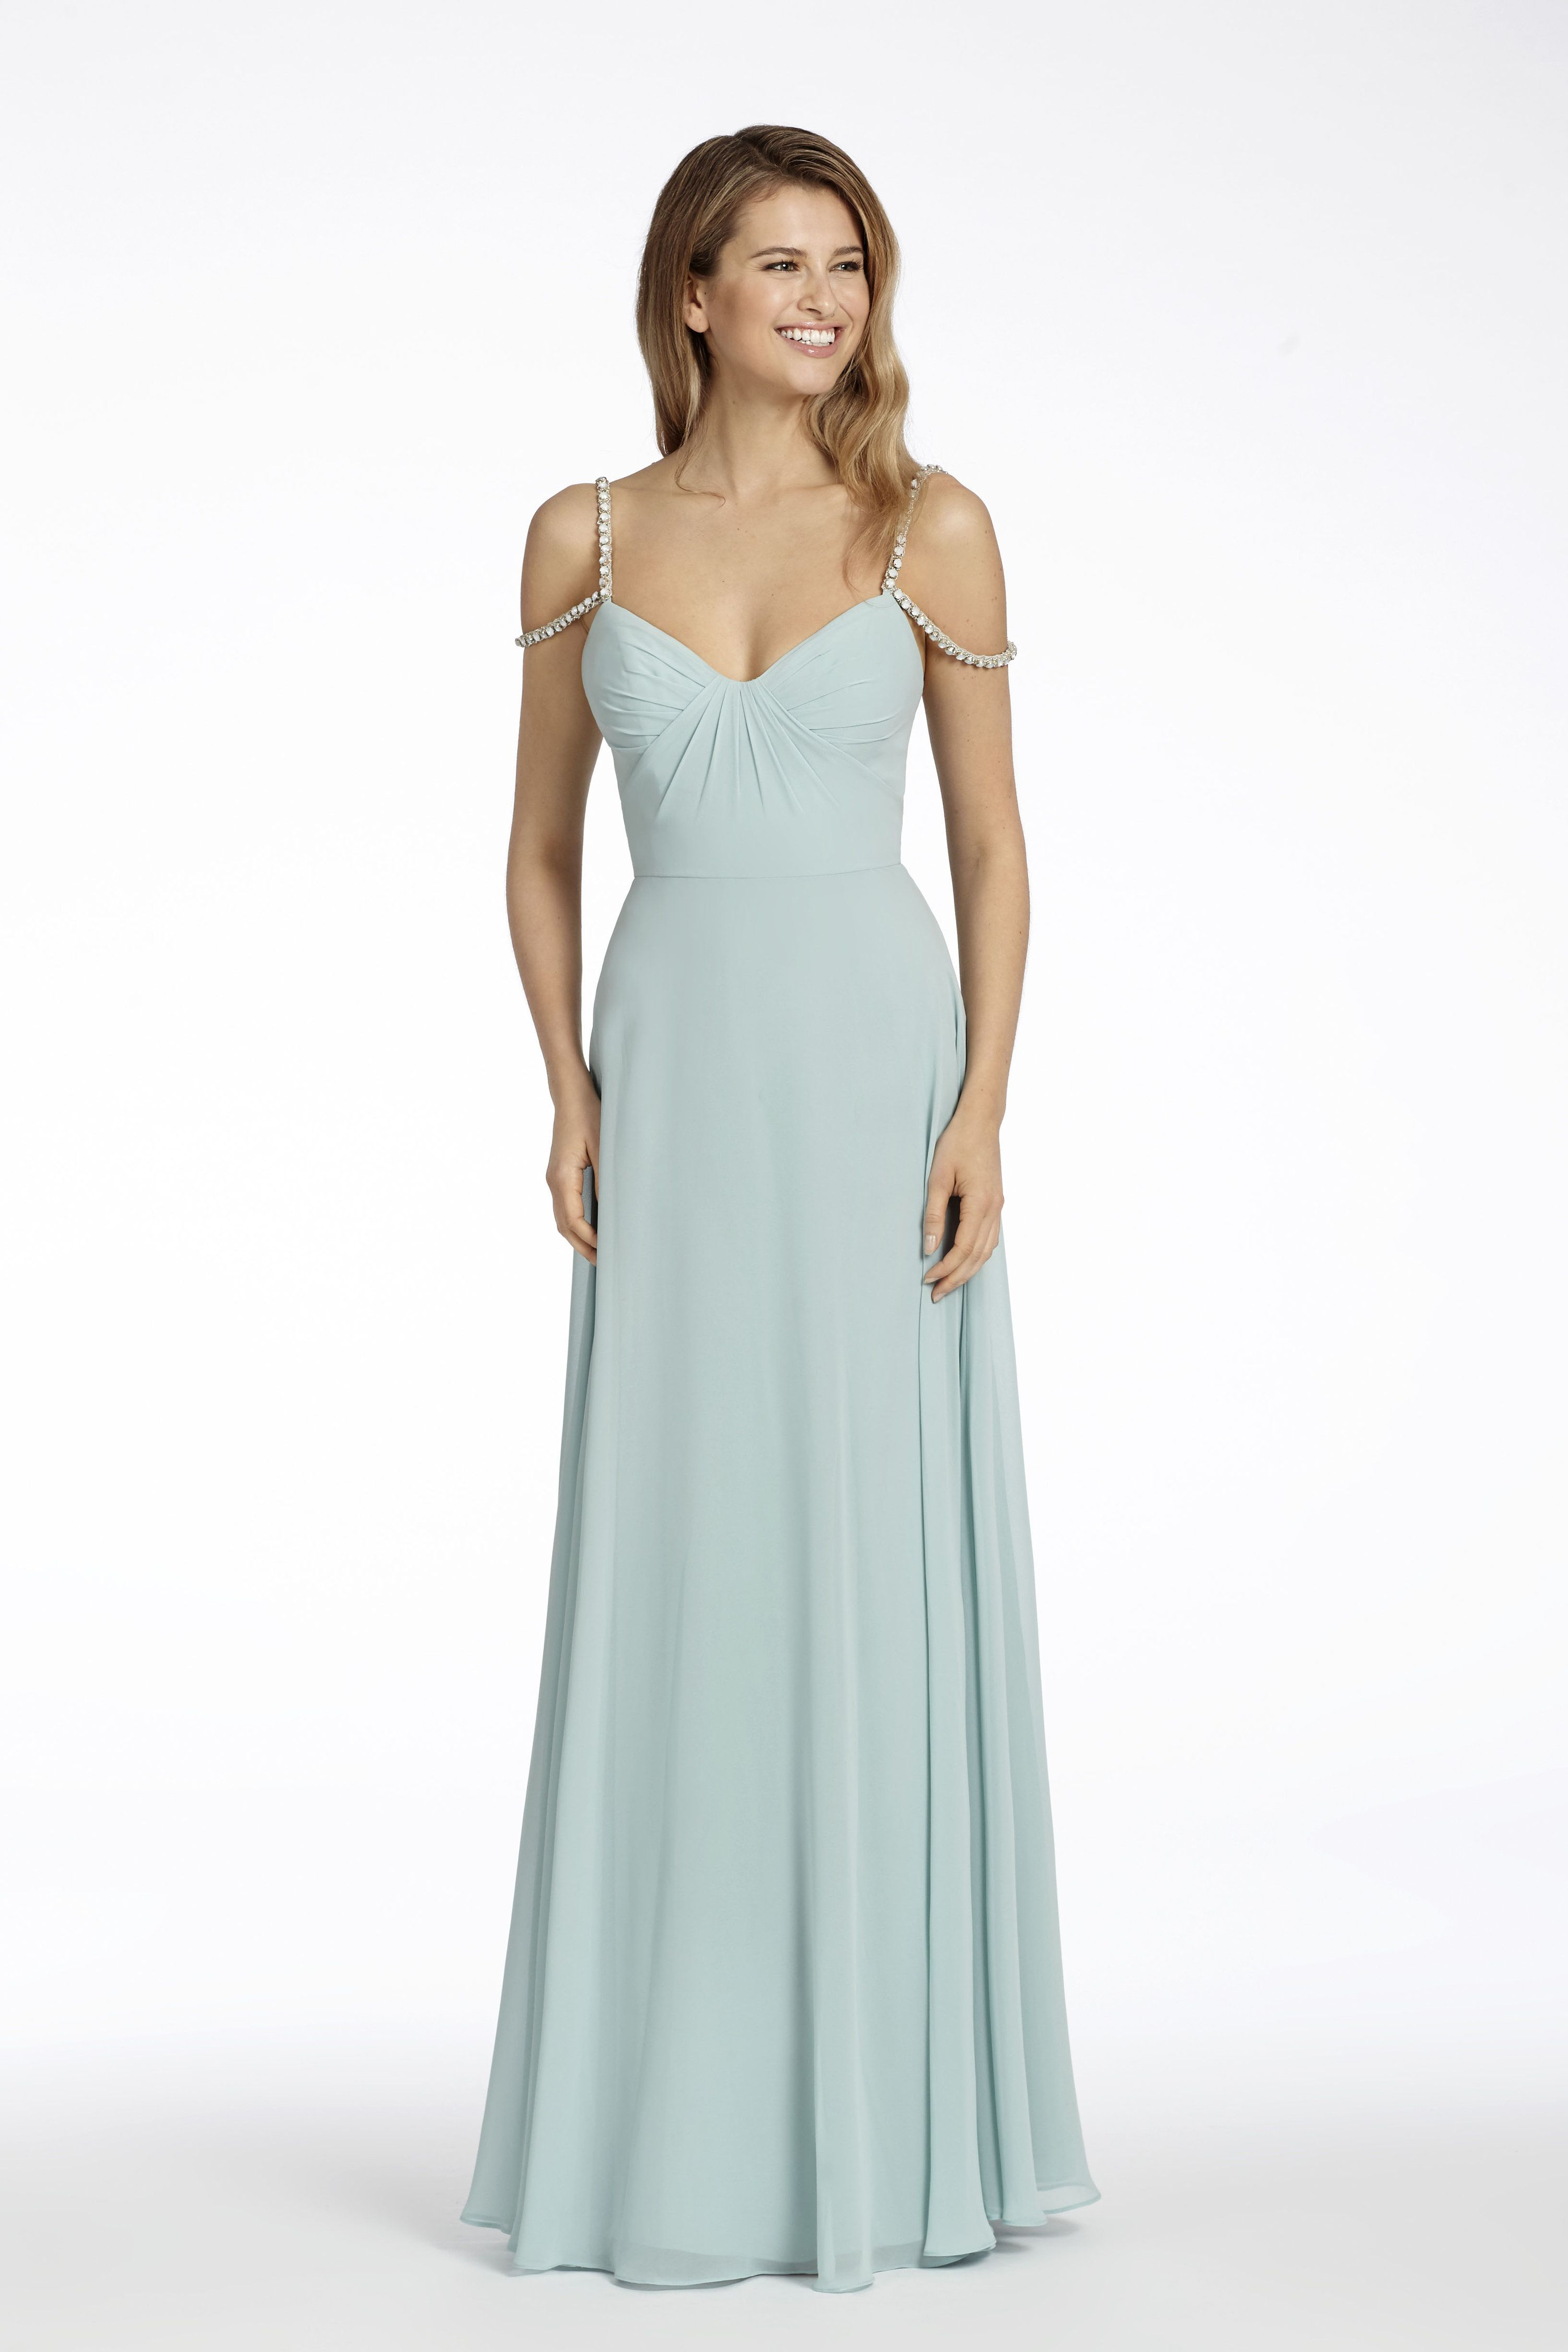 Style 5700 ice blue chiffon a line bridesmaid gown scoop draped style 5700 ice blue chiffon a line bridesmaid gown scoop draped bodice ombrellifo Image collections